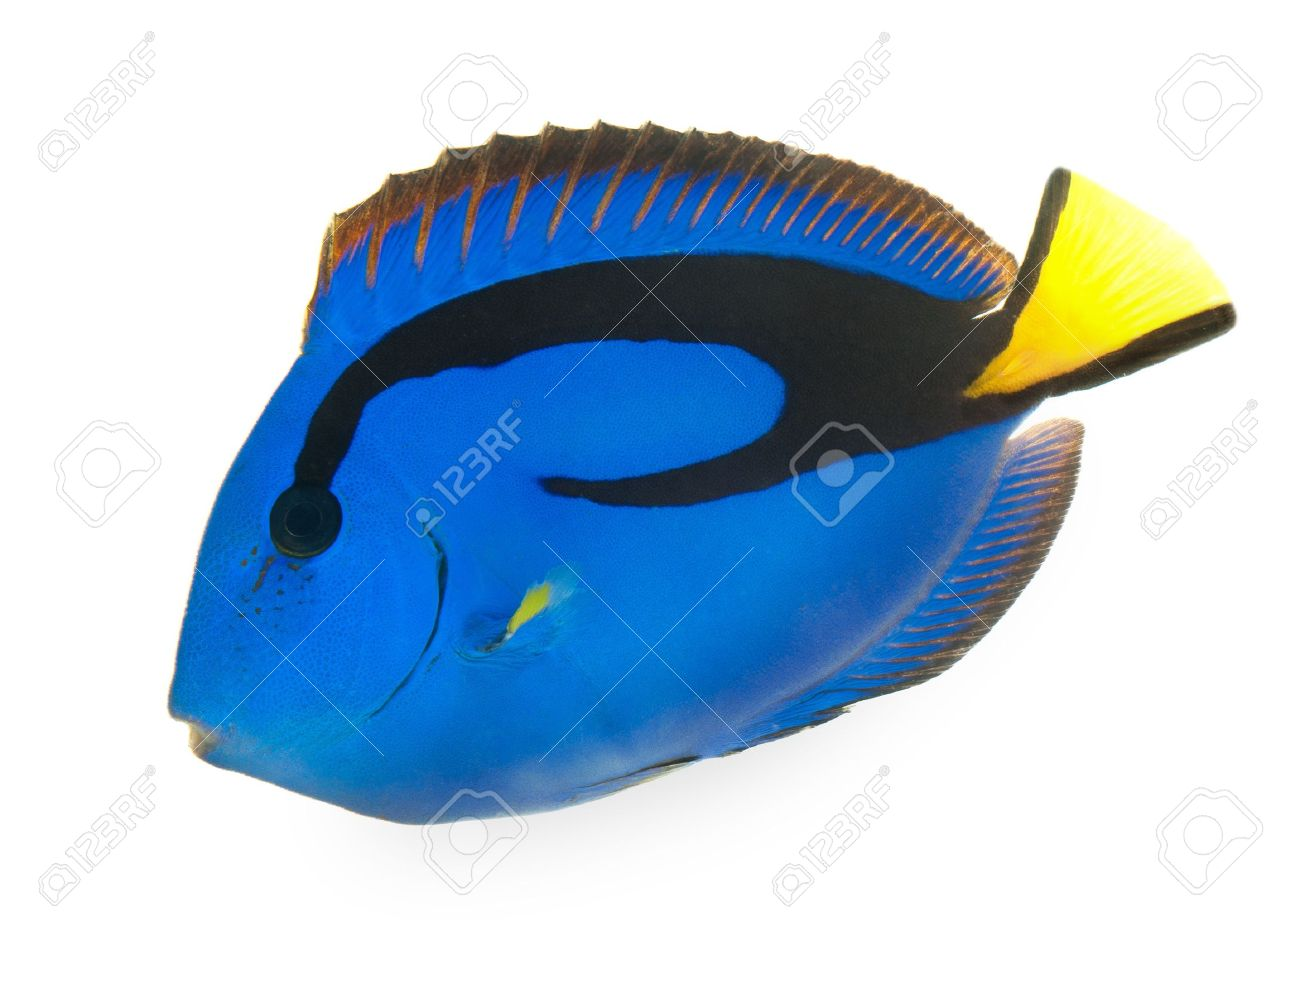 blue tang , marine coral fish isolated on white background Stock Photo - 11154893